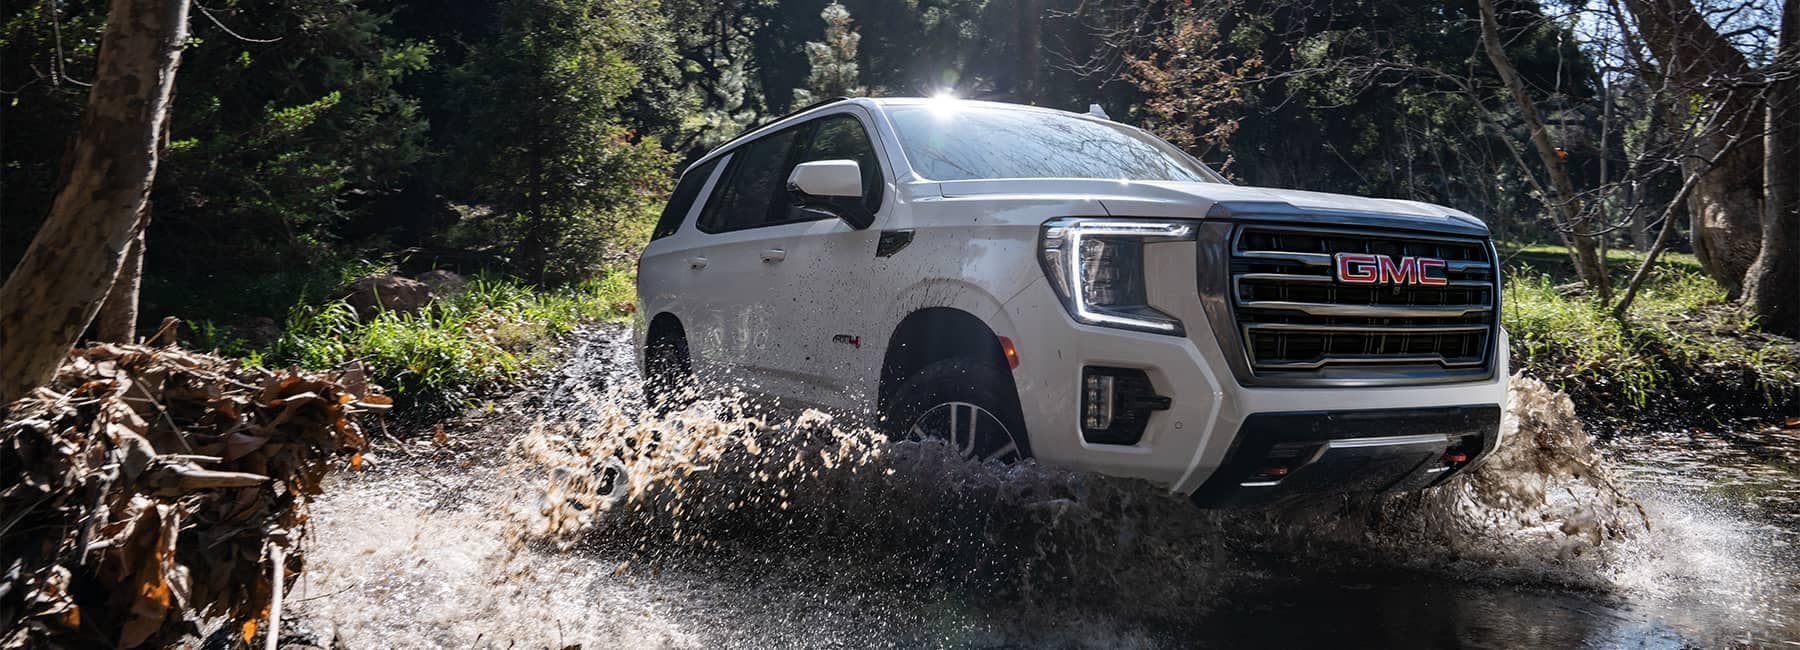 2021 Summit White GMC Yukon AT4 4WD driving through a forest